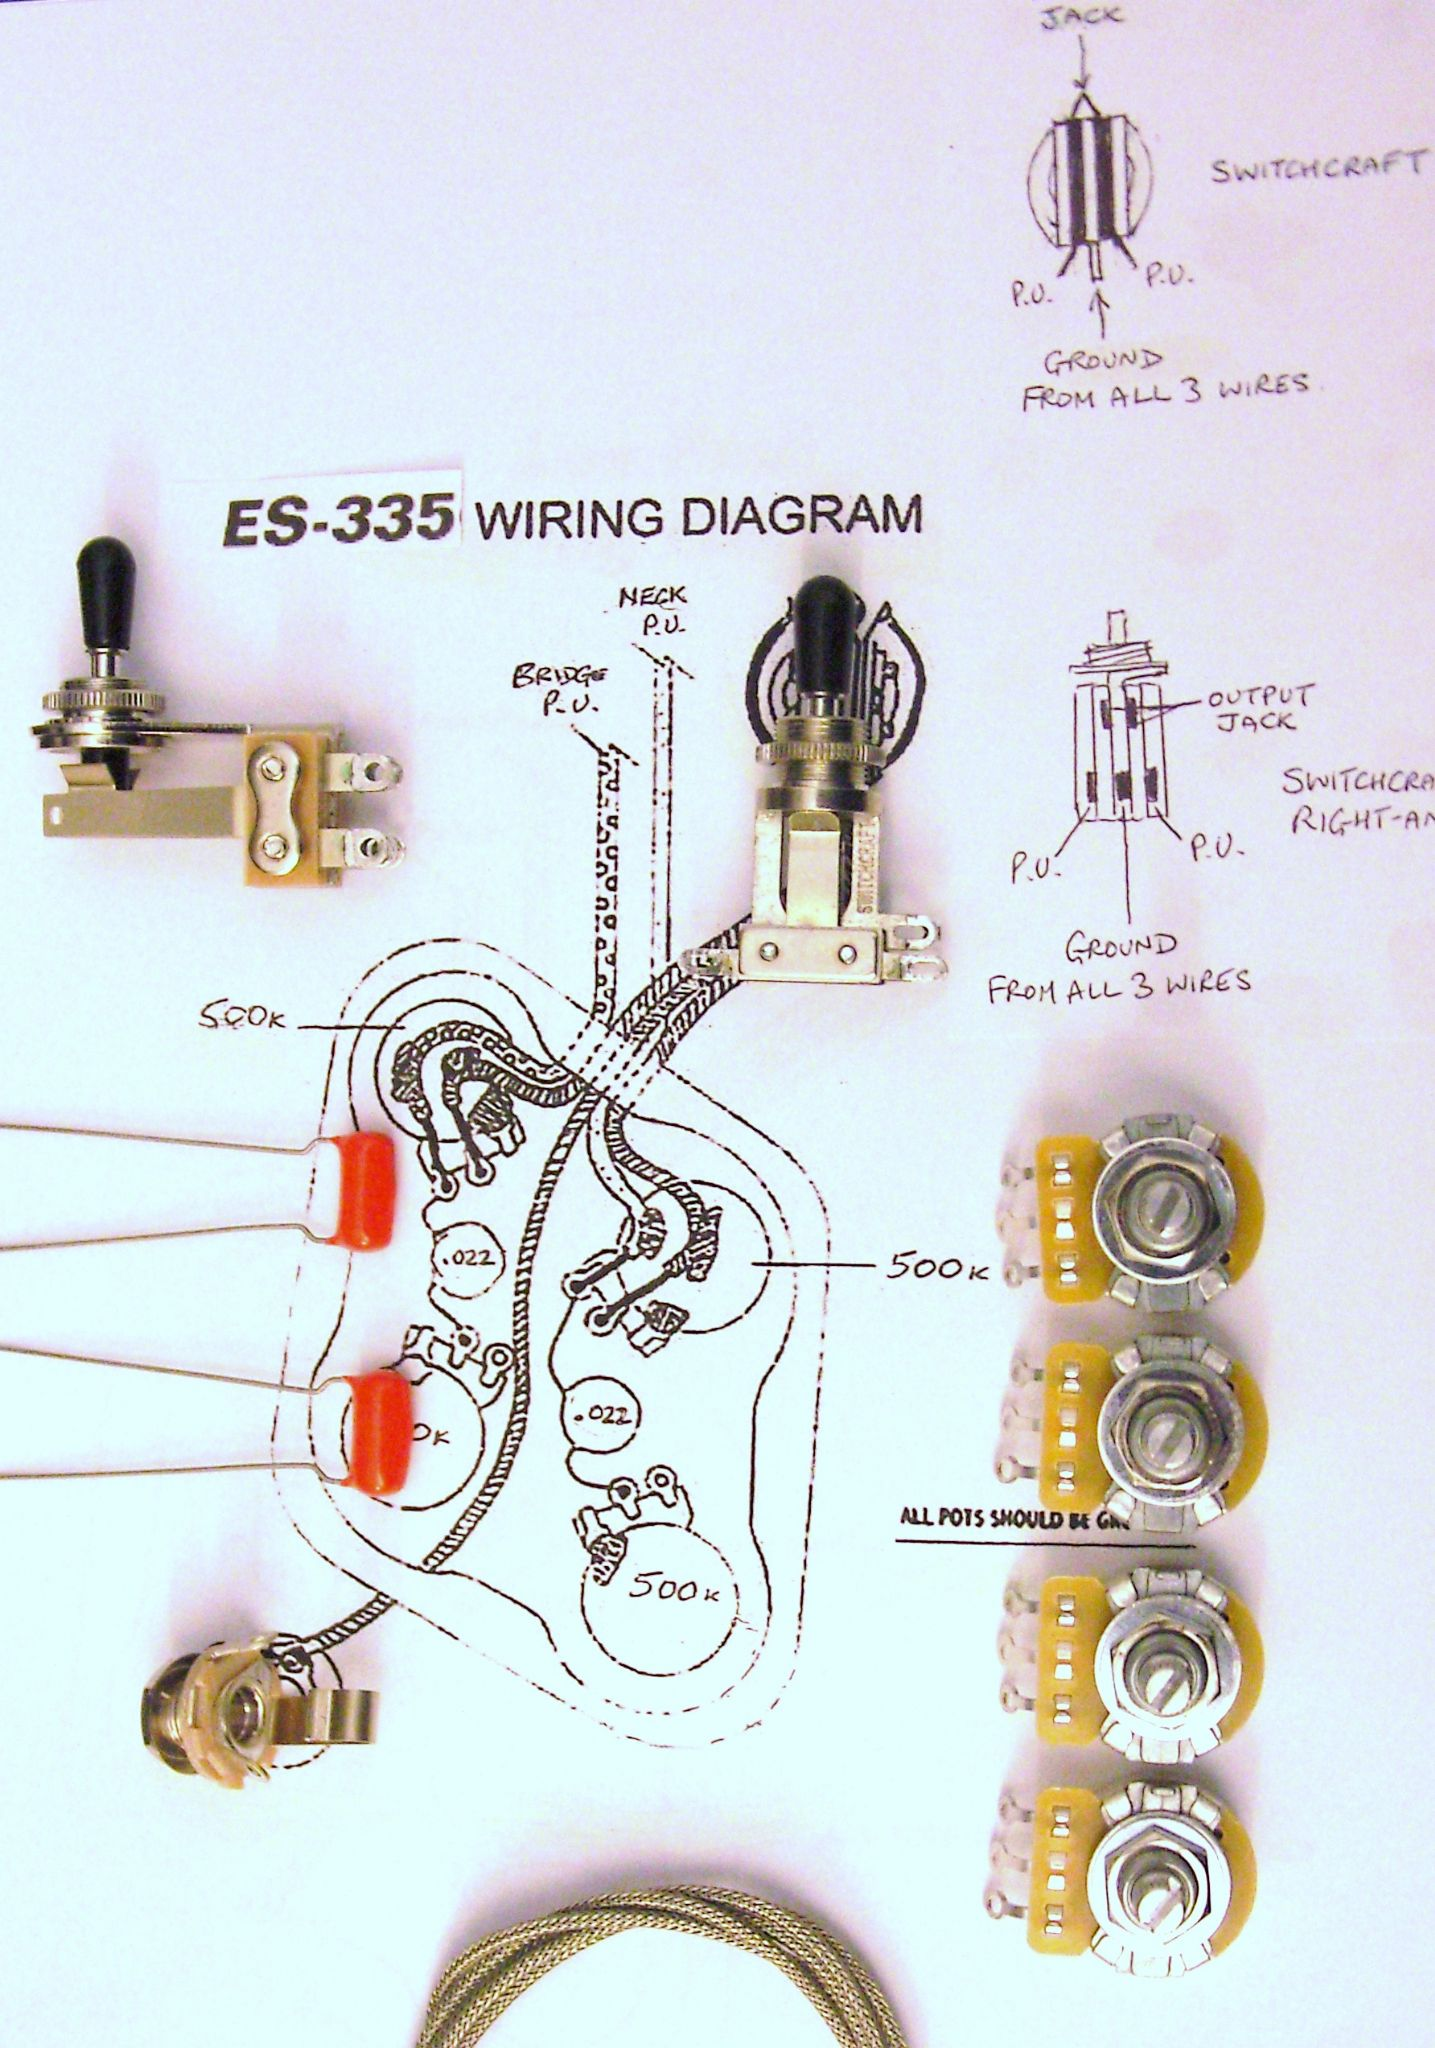 Way Socket Wiring Diagram on 3 way installation, 3 way dimensions, 3 way door, 3 way plug wiring, 3 way water pump, 3 way switch diagram, 3 way introduction, 3 way switches diagram, 3 way starter, 3 way troubleshooting, 3 way switch connections, 3 way outlet wiring, 3 way fuse, 3 way frame, 3 way switching diagram, 3 way wiring circuit, 3 way generator, 3 way sensor diagram, 3 way lighting diagram, 3 way parts,